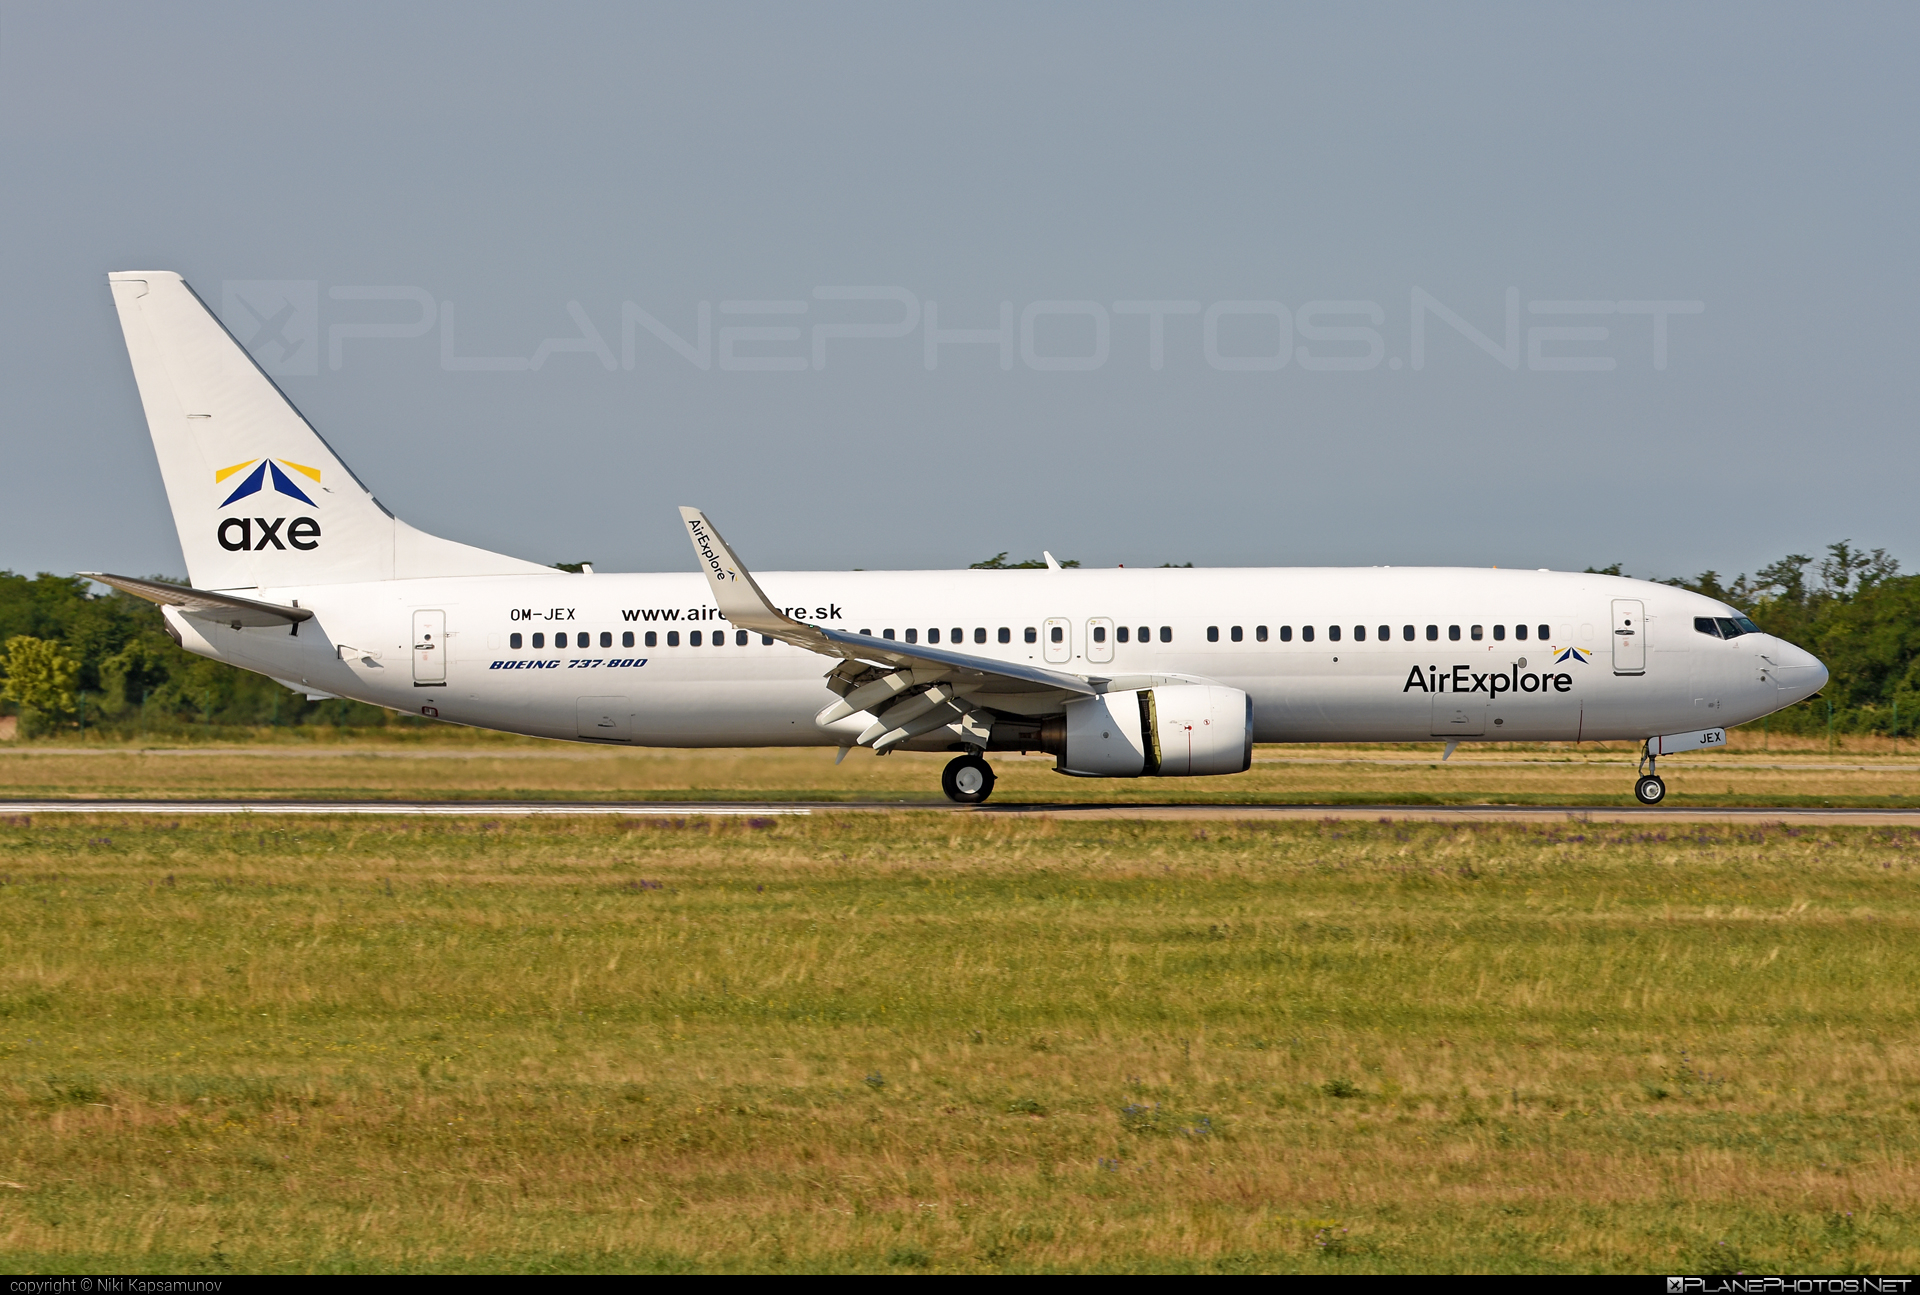 Boeing 737-800 - OM-JEX operated by AirExplore #AirExplore #b737 #b737nextgen #b737ng #boeing #boeing737